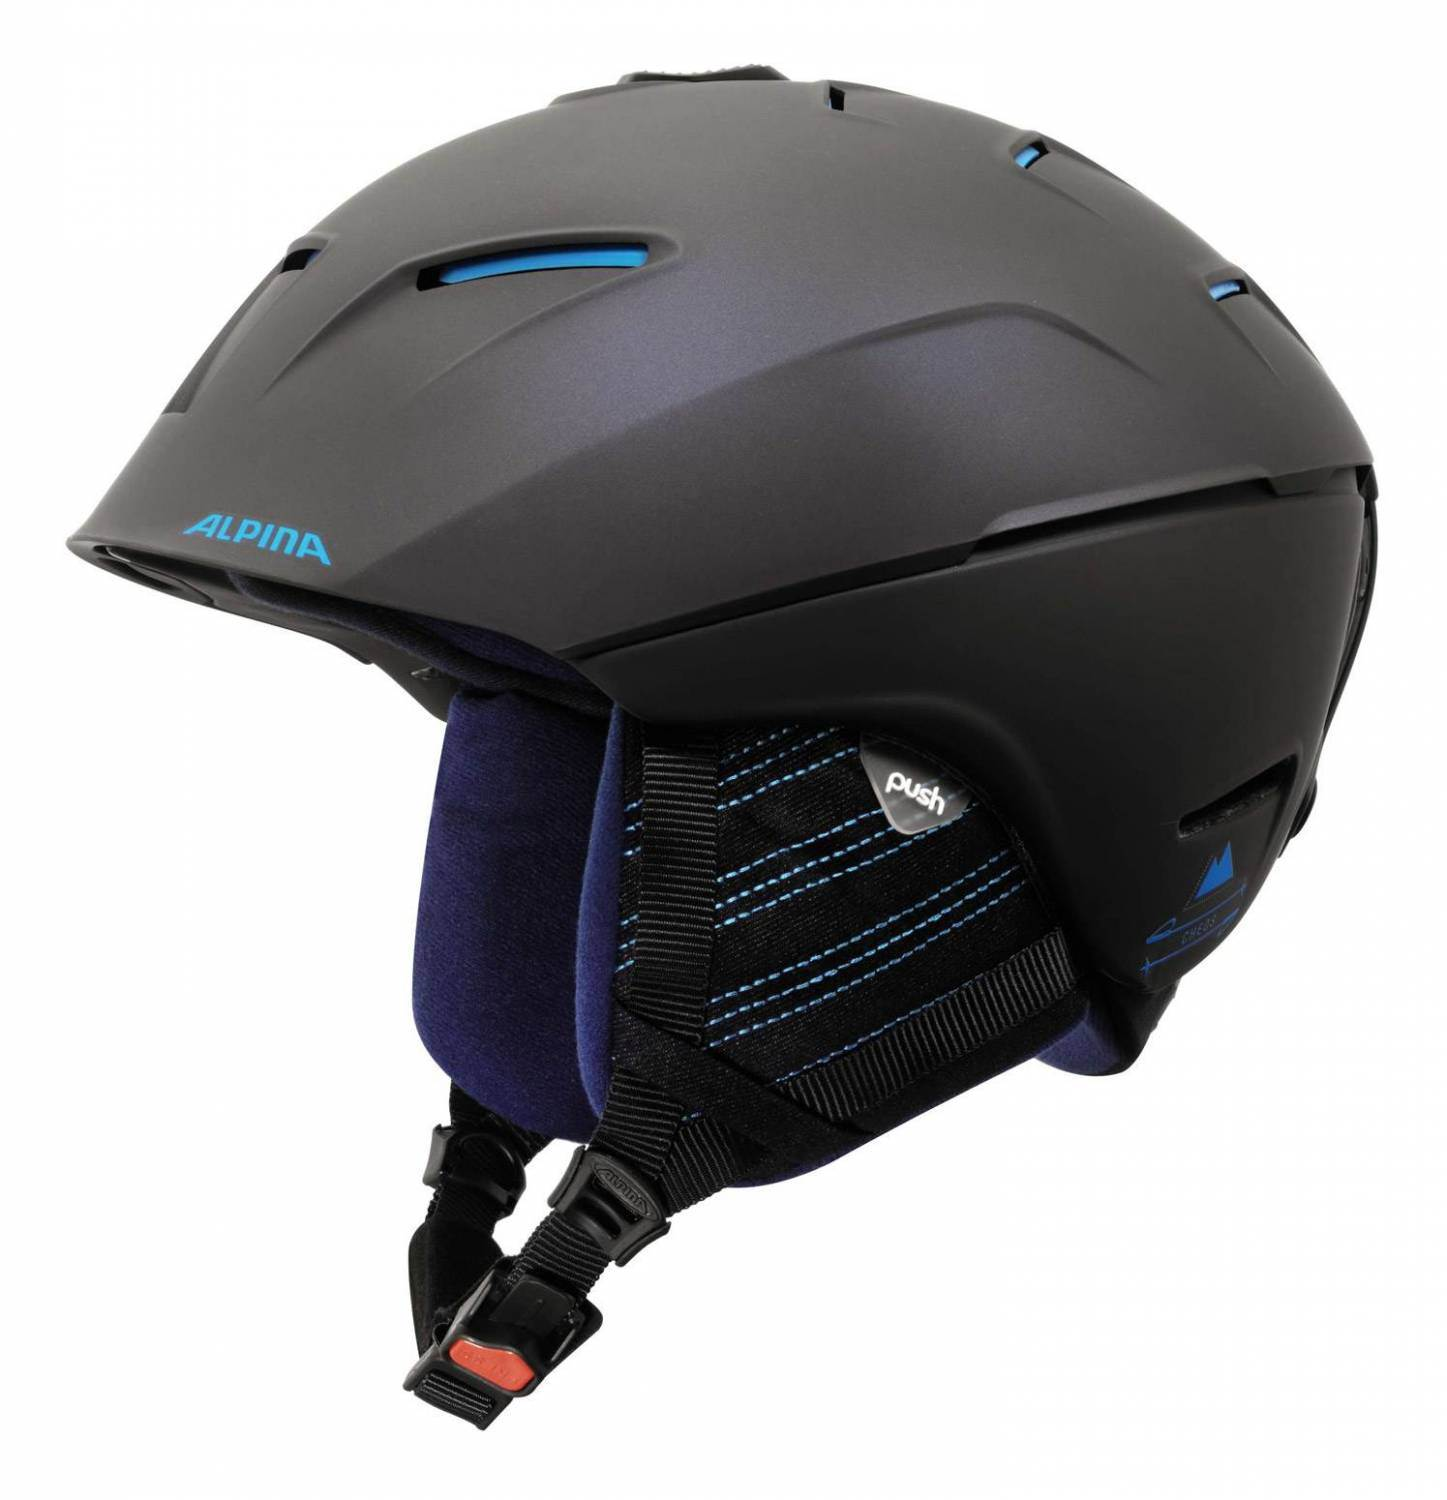 alpina-cheos-skihelm-gr-ouml-szlig-e-52-56-cm-83-nightblue-denim-matt-